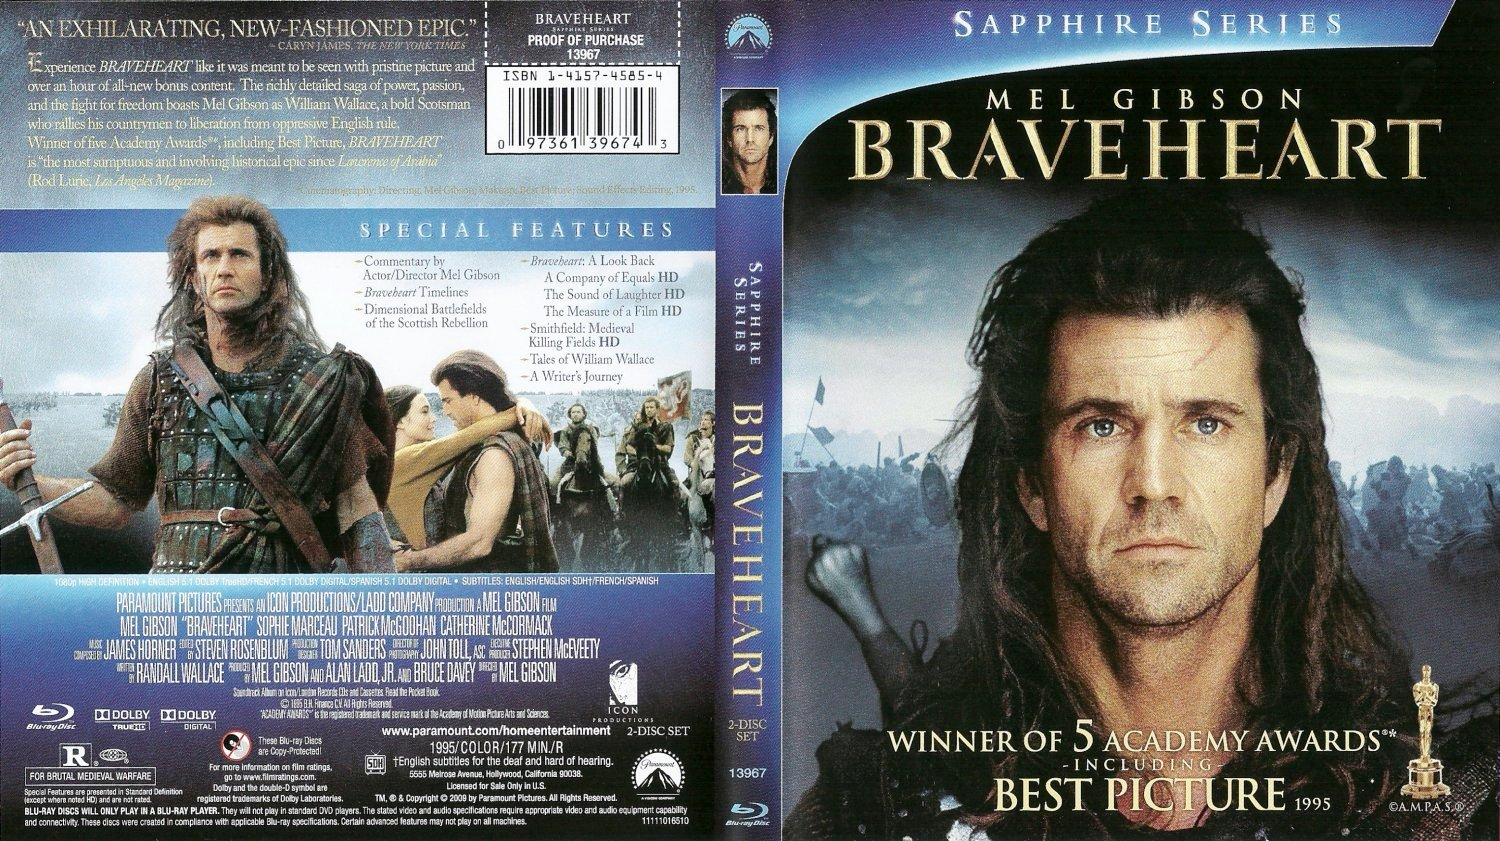 braveheart facebook cover - photo #7